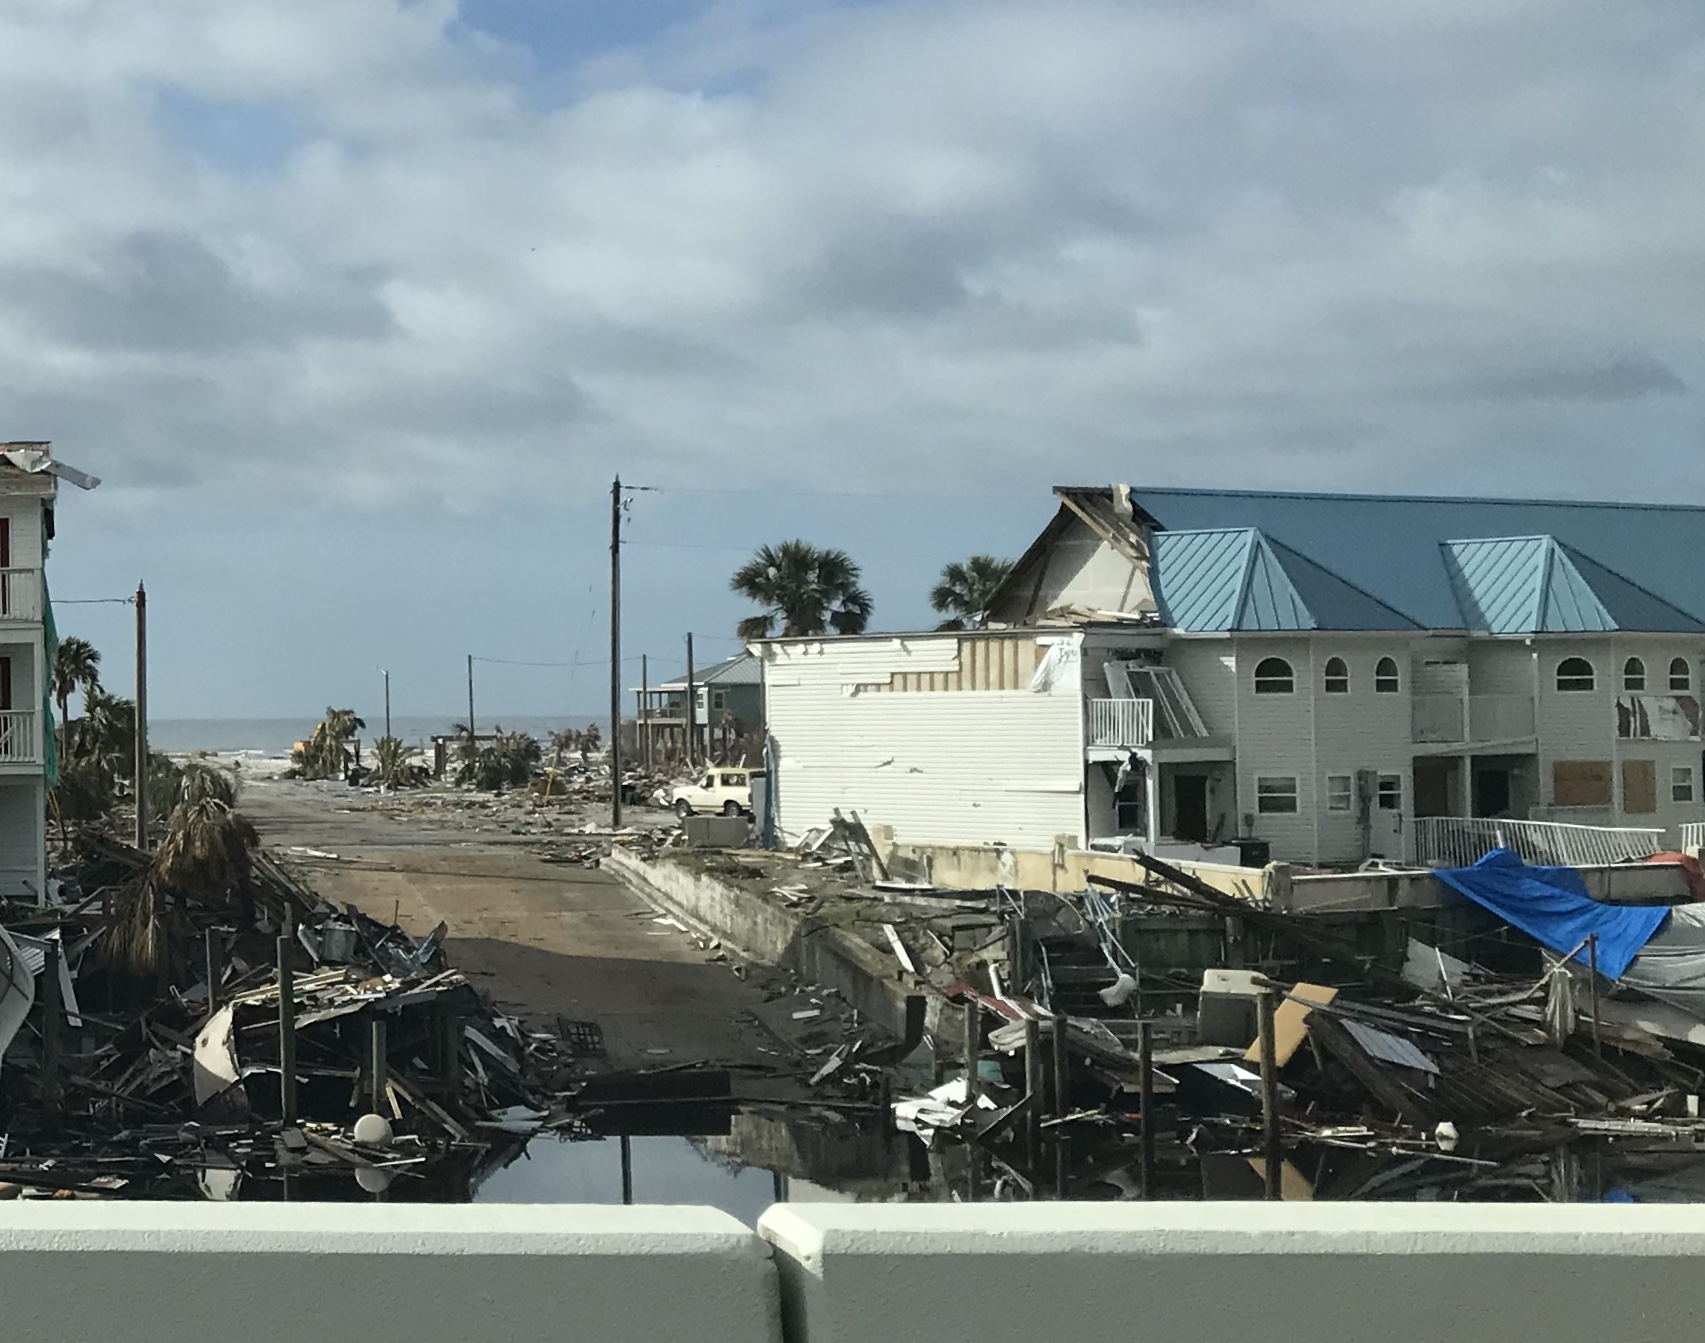 Hurricane destruction near the beach in the Panhandle of Florida